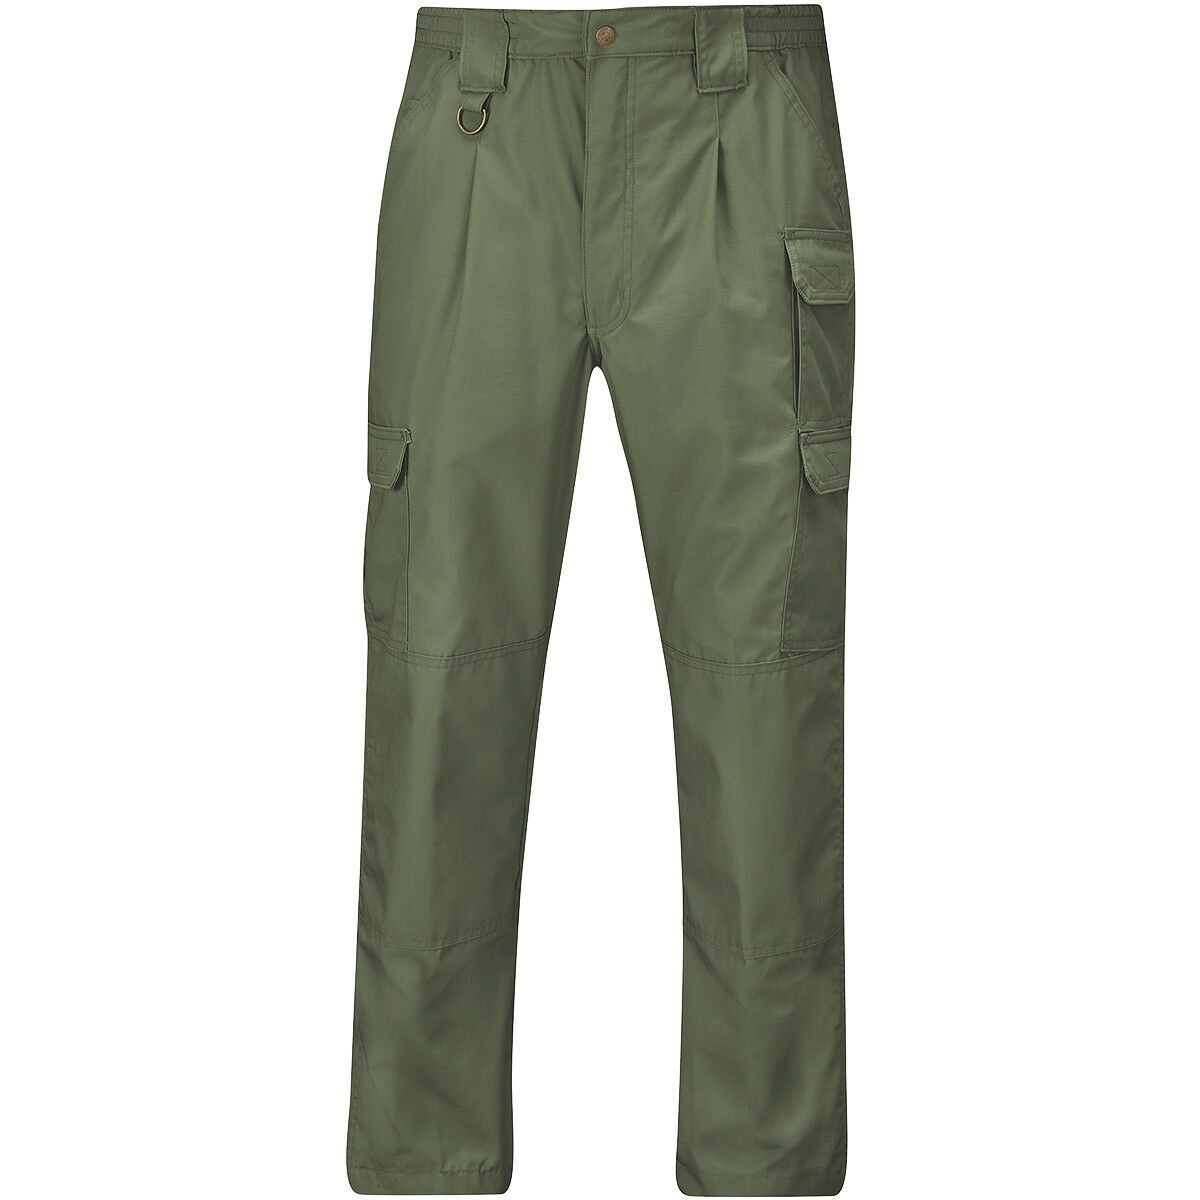 Propper Mens Lightweight Tactical Pants Ripstop Hunting Duty Trouser Olive Green